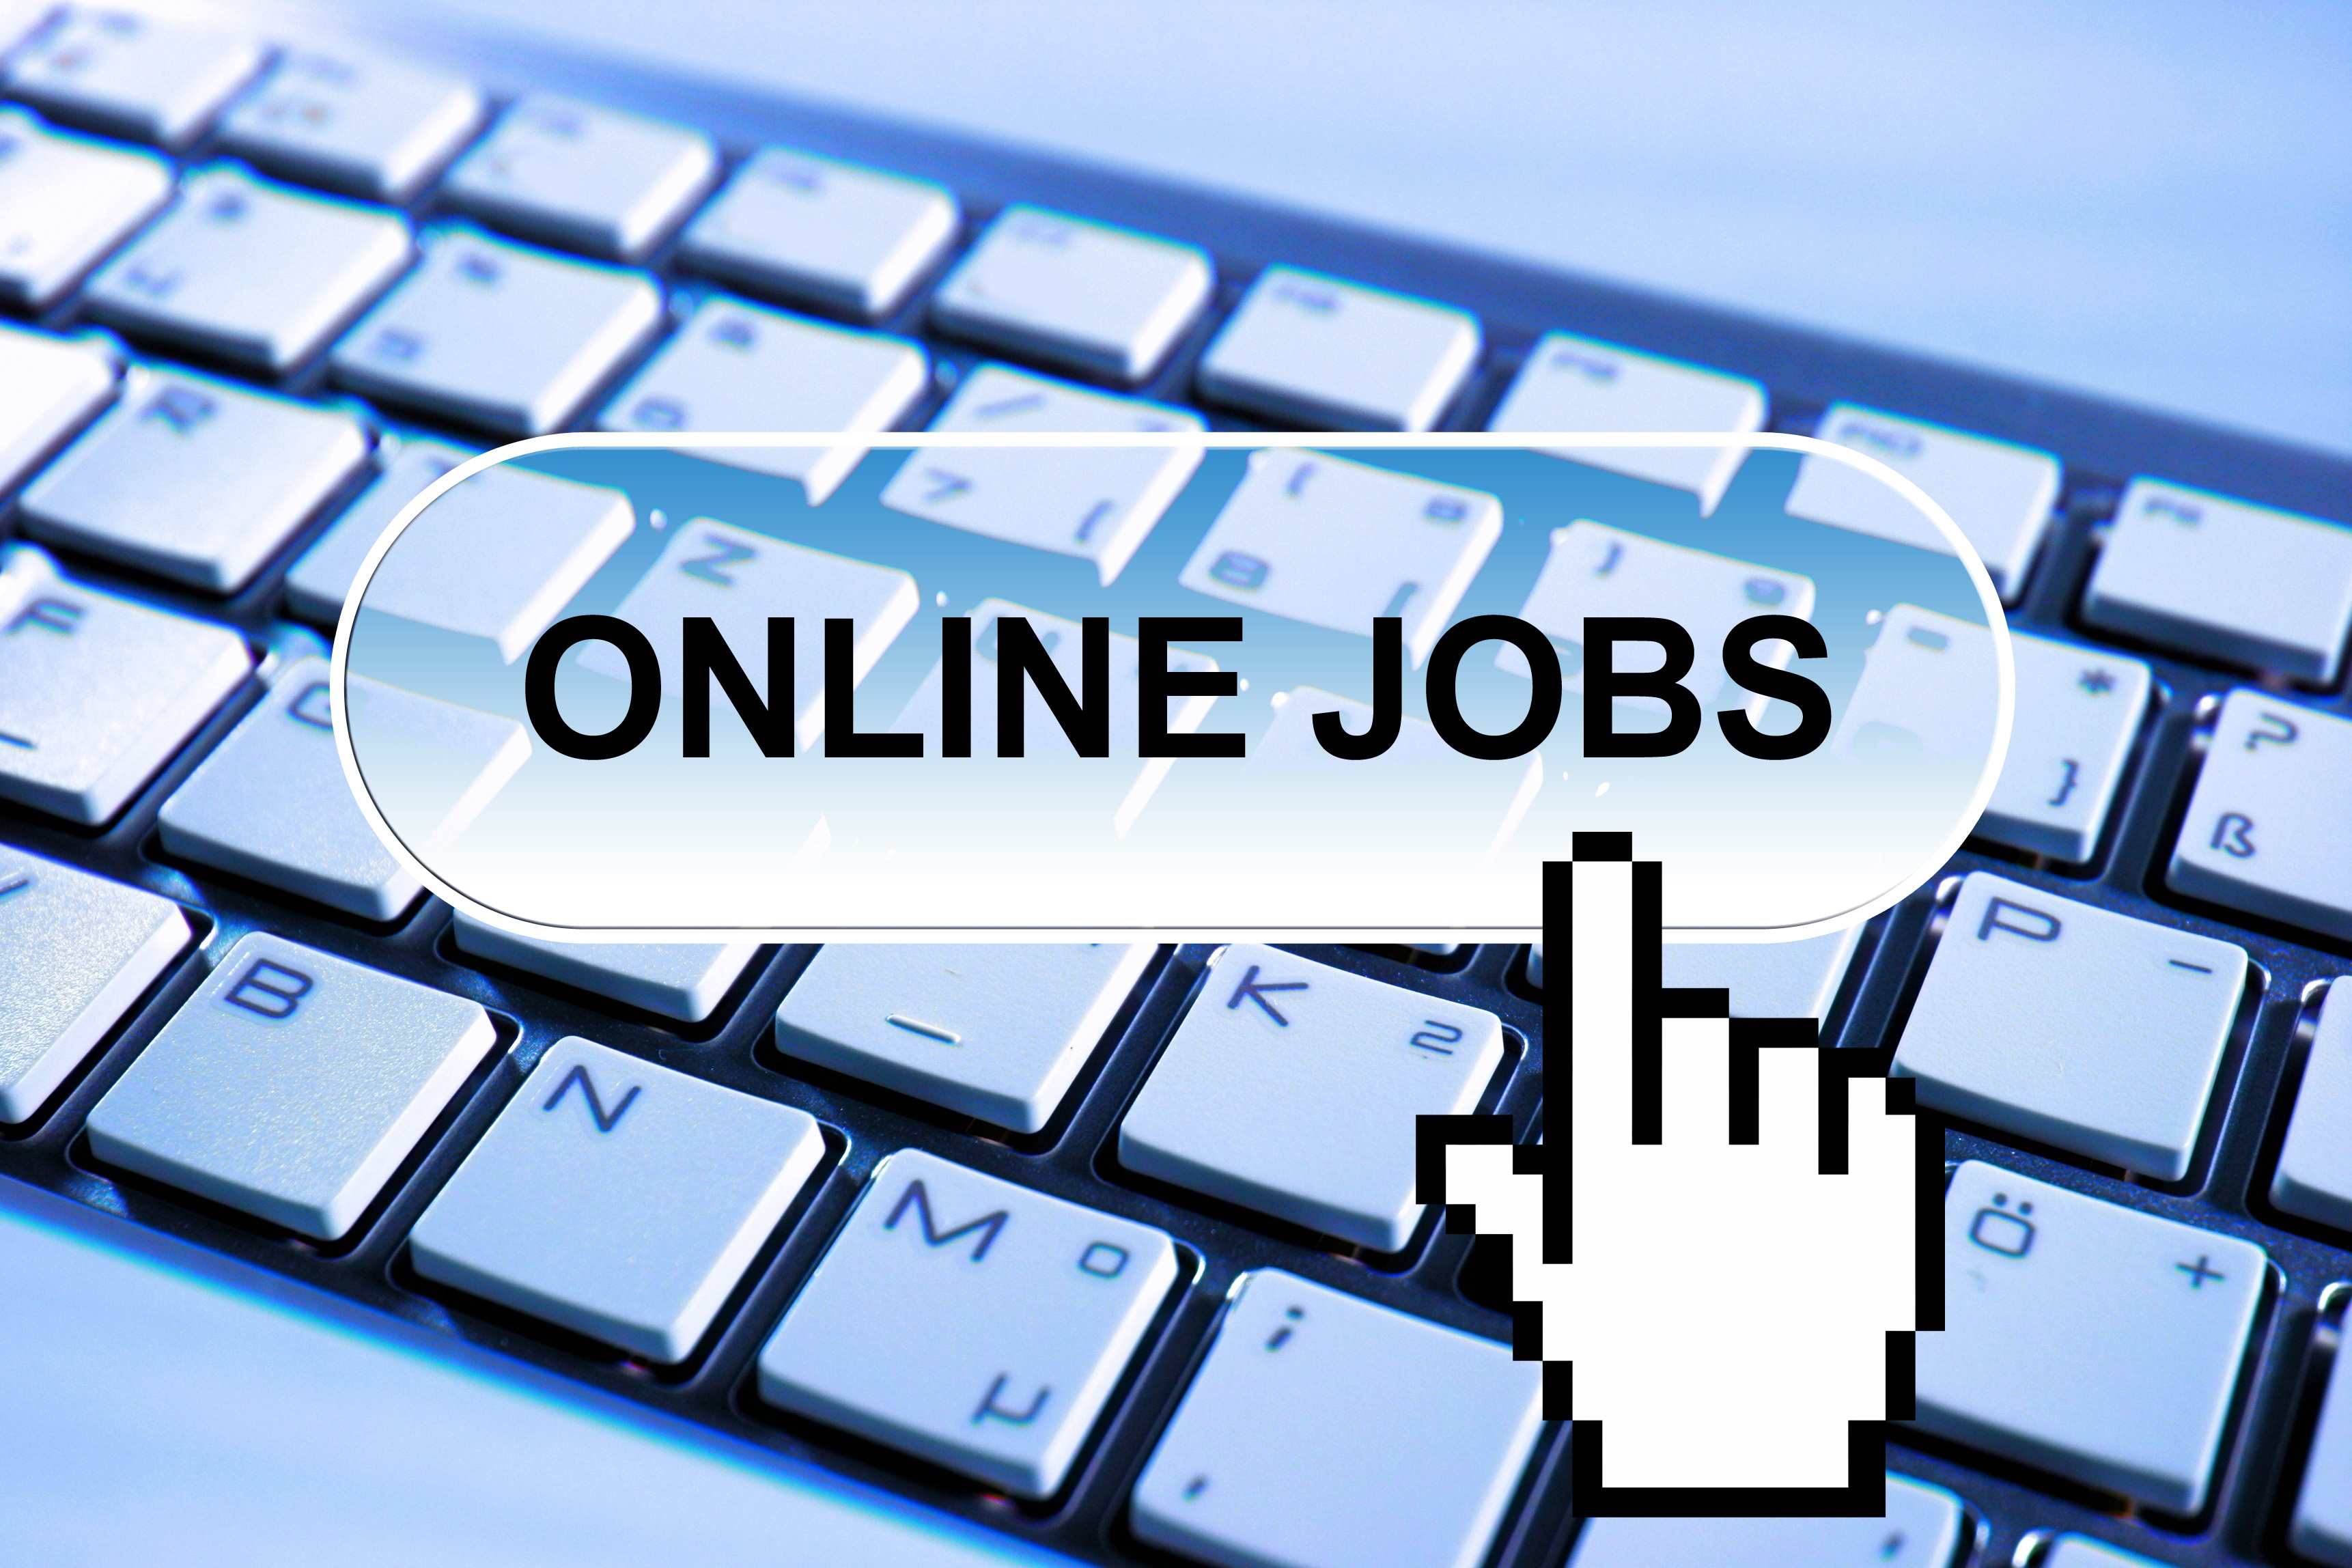 Online Jobs and Job Software